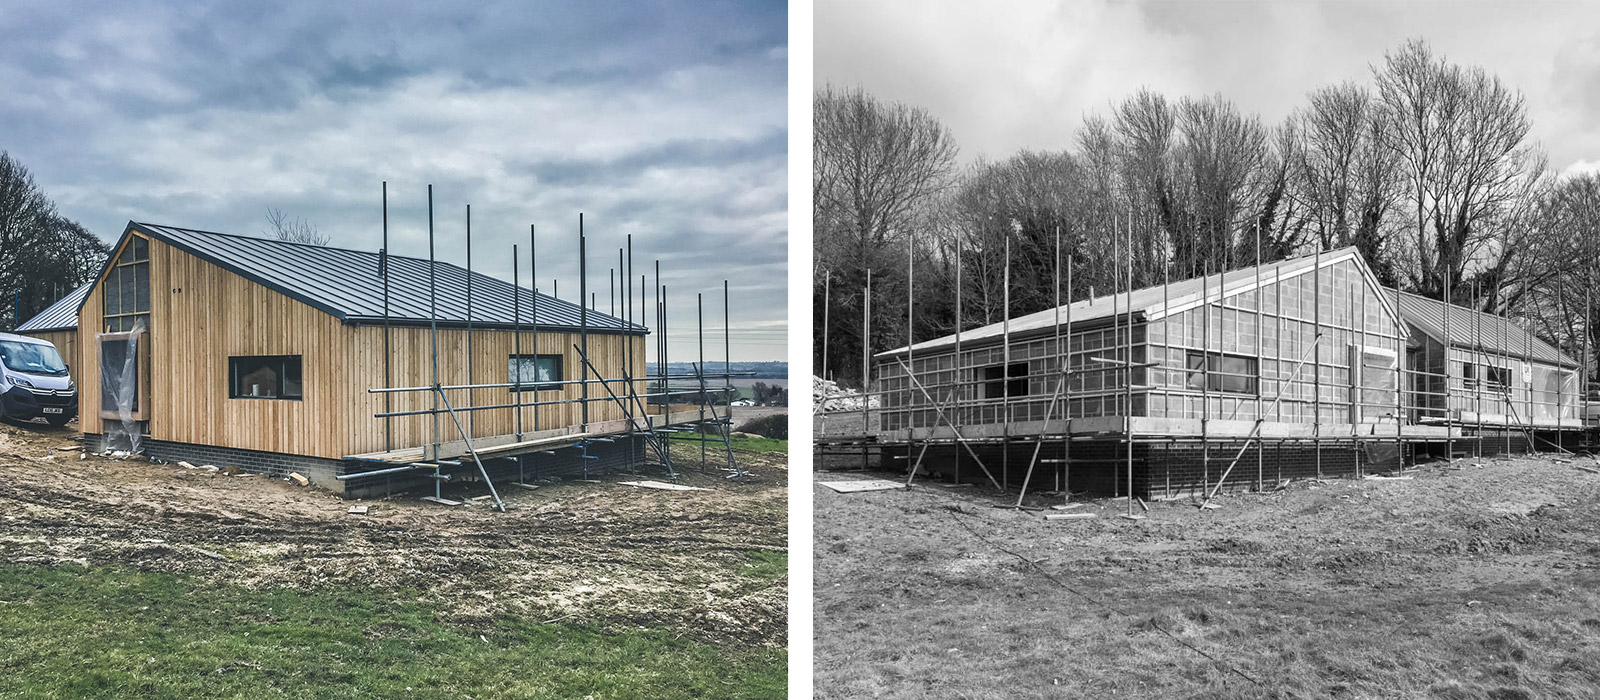 gyd architecture | new build house under construction before and after cladding